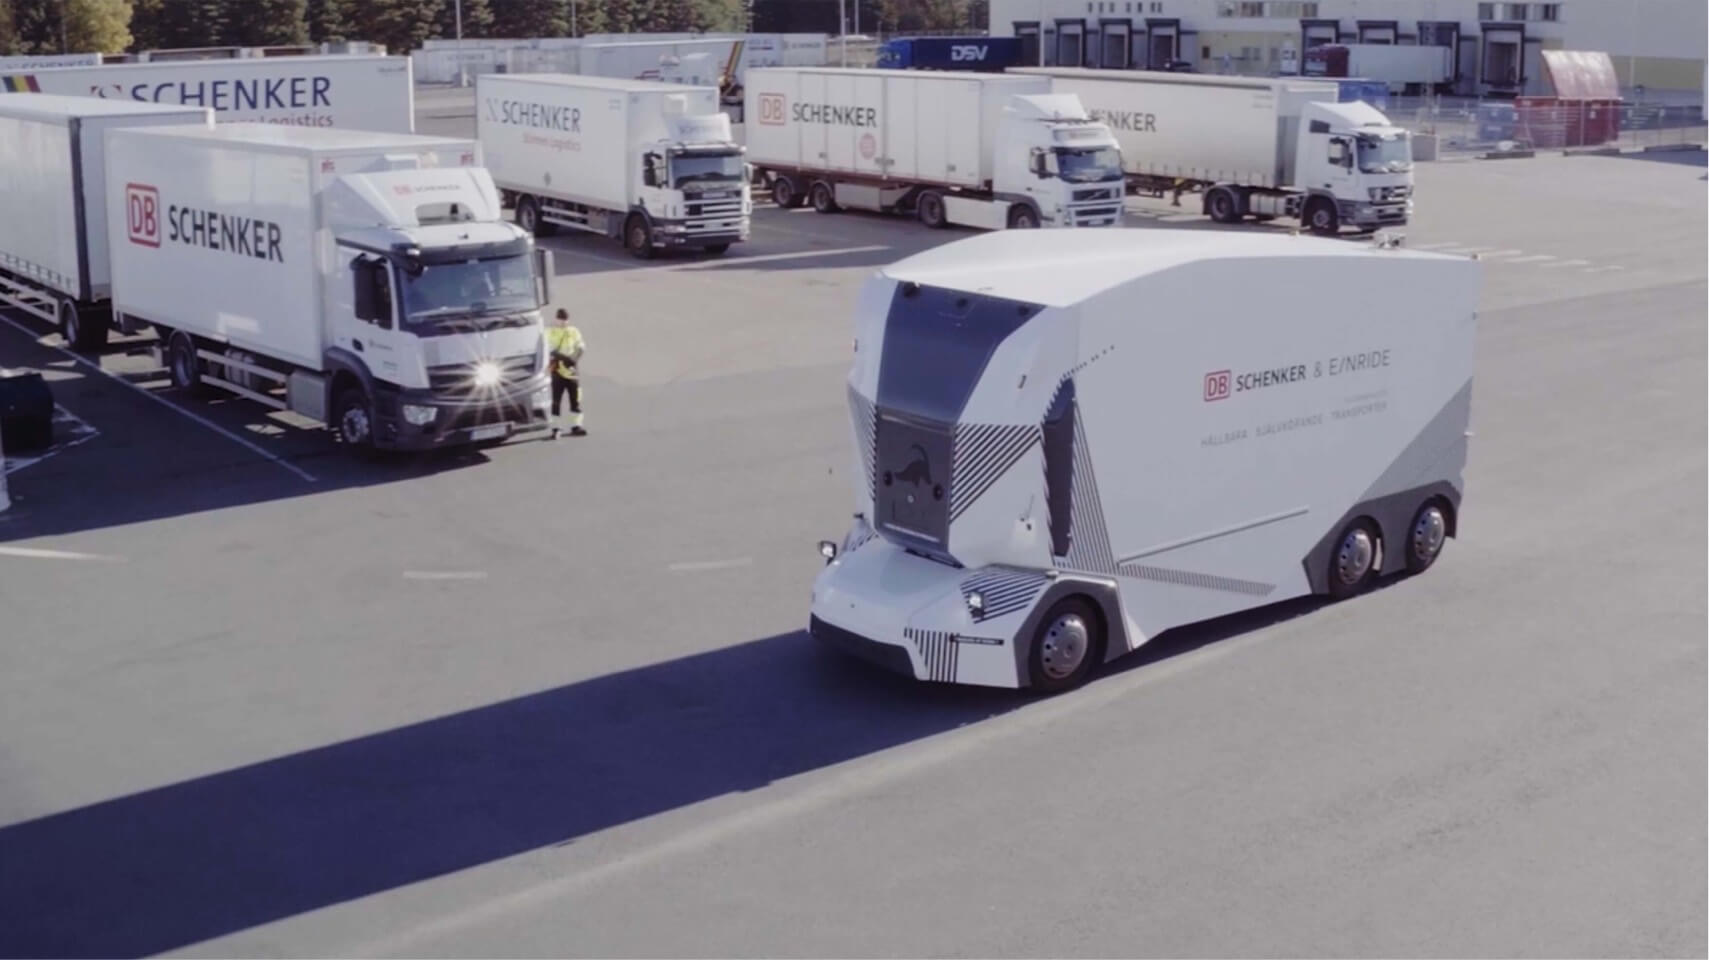 cloud-powers-autonomous-frieght-truck-system-designed-to-cut-environmental-impact